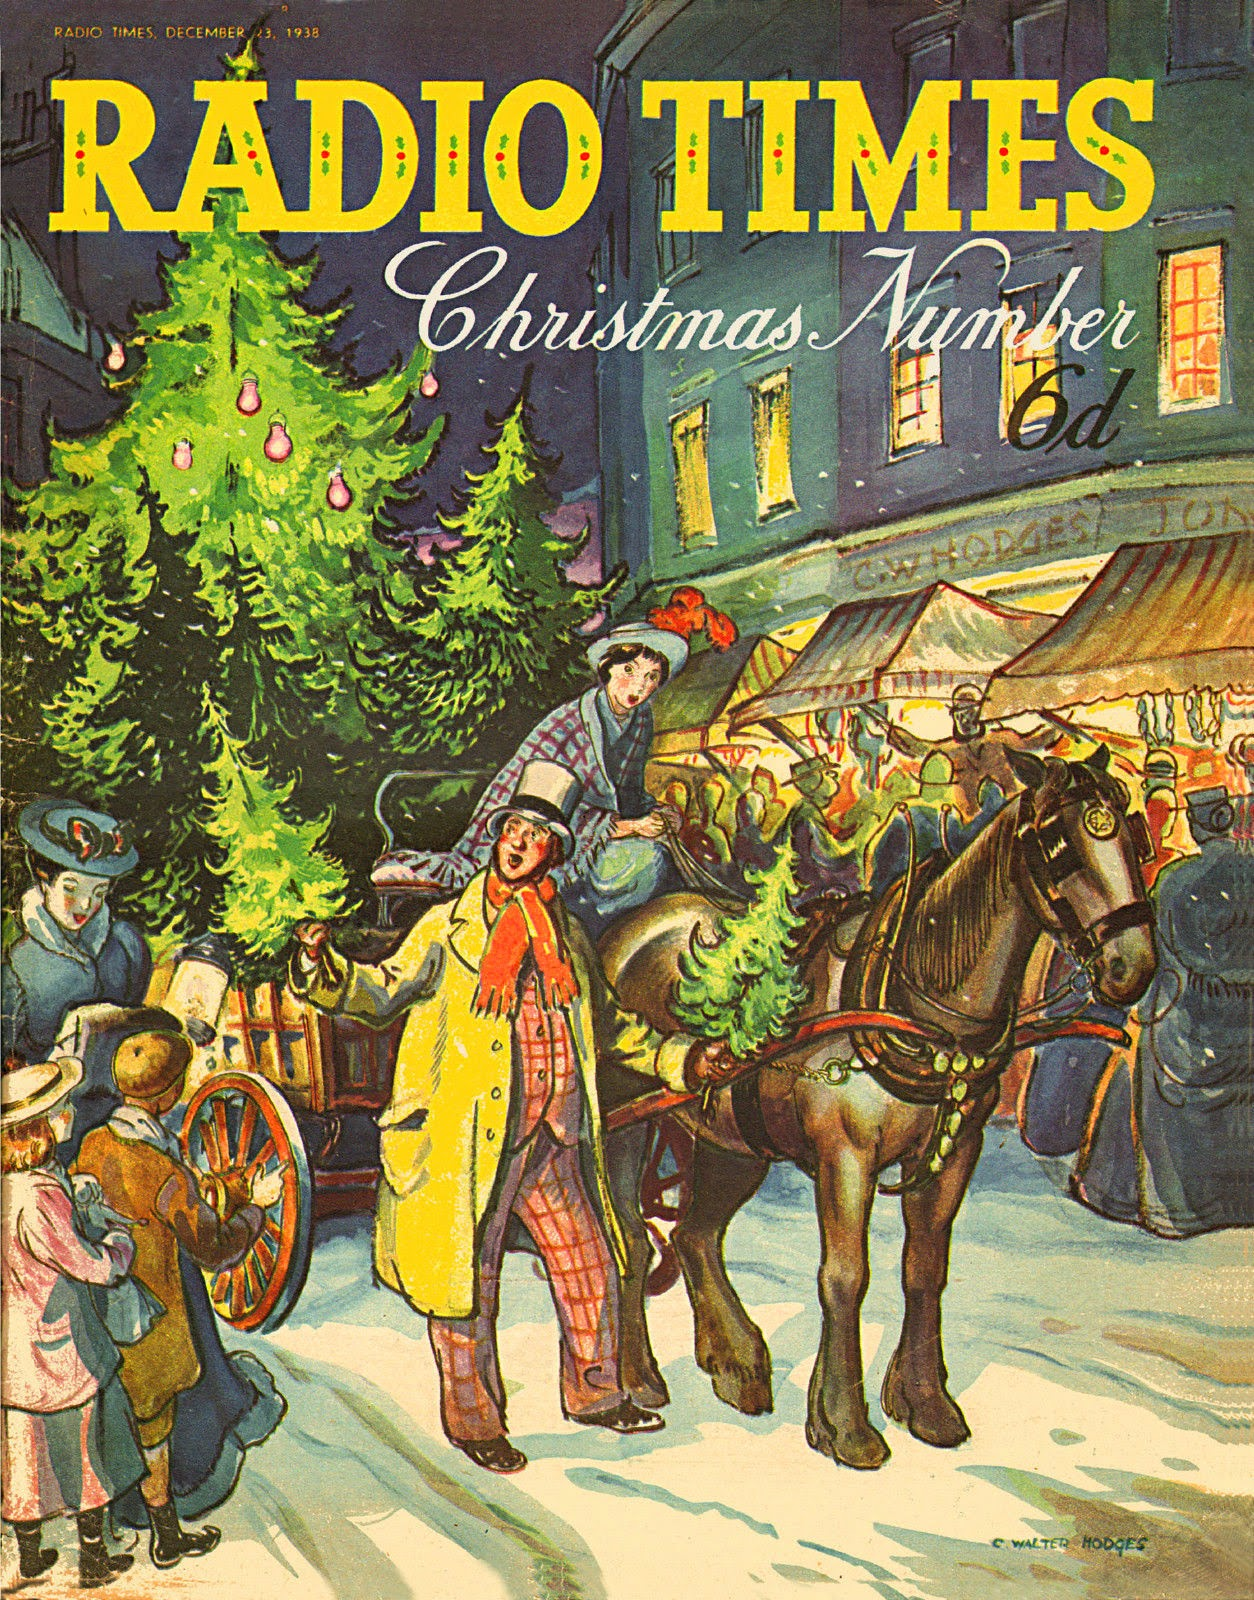 All About London Radio Times Christmas Cover 1938